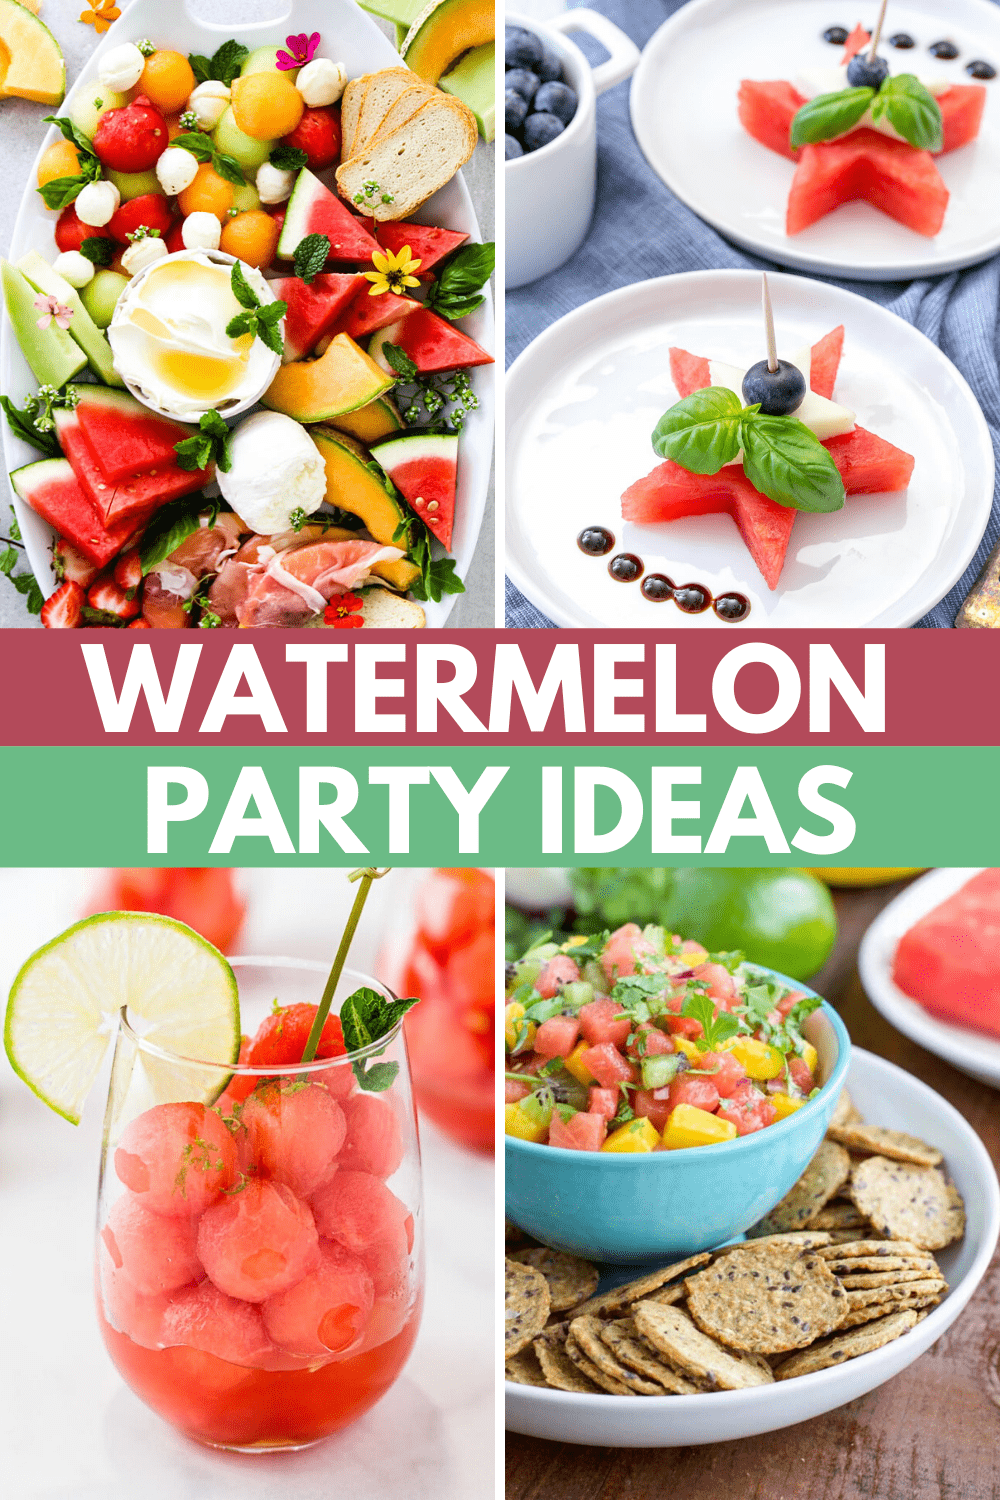 Watermelon Recipes and Party Ideas 🍉 🍉